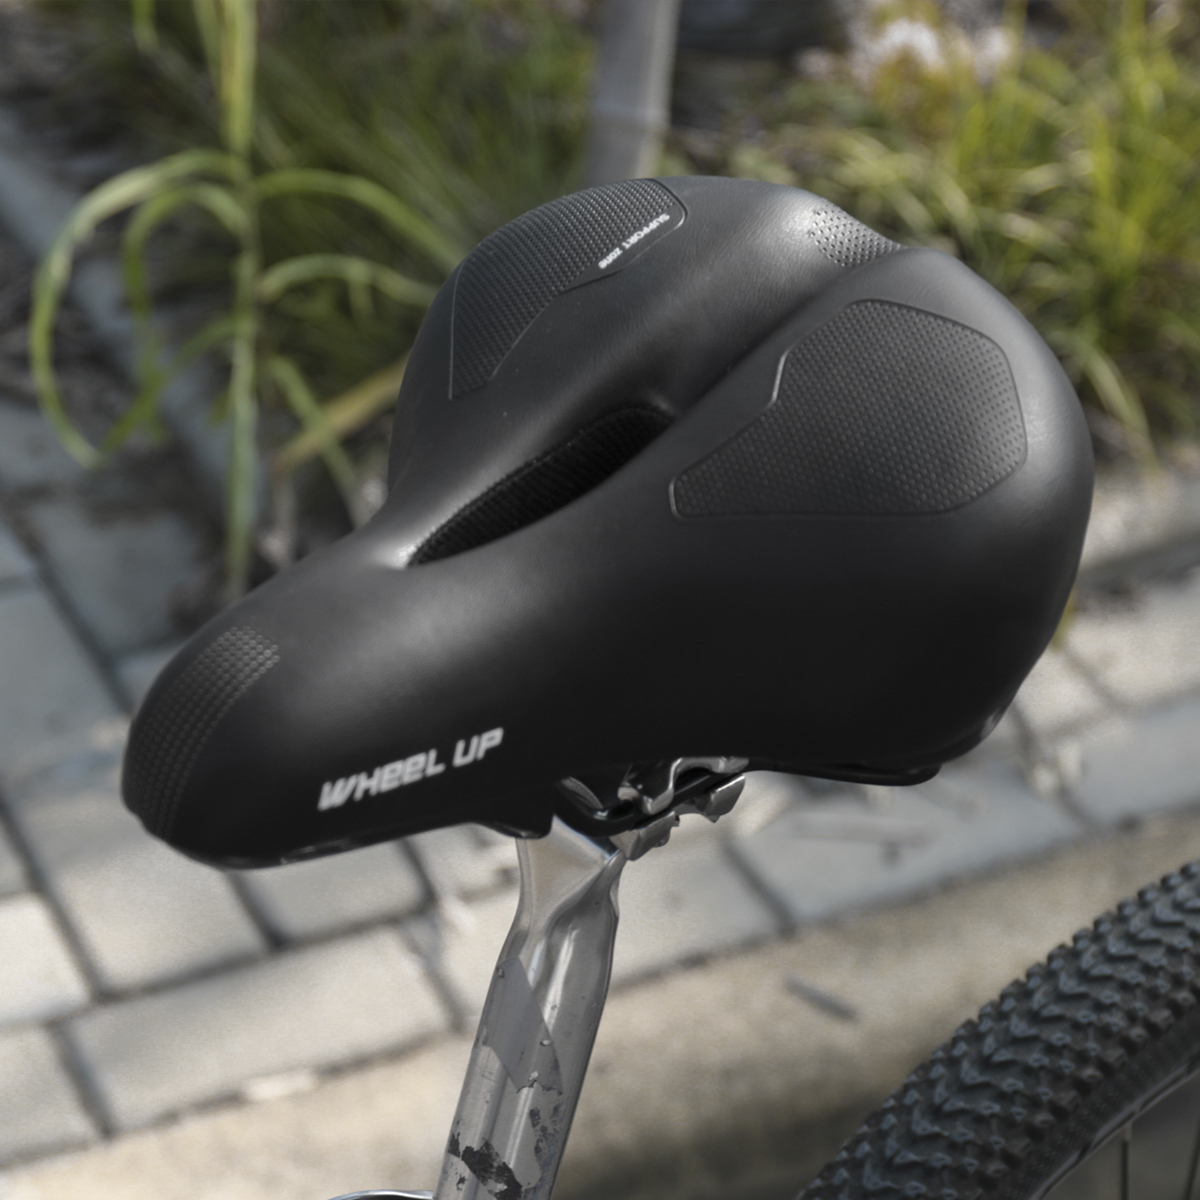 WHEEL UP Breathable Hollow Suspension Bicycle Saddle Comfort Wide MTB Bike Cycling Gel Seat Saddle Seat Pad